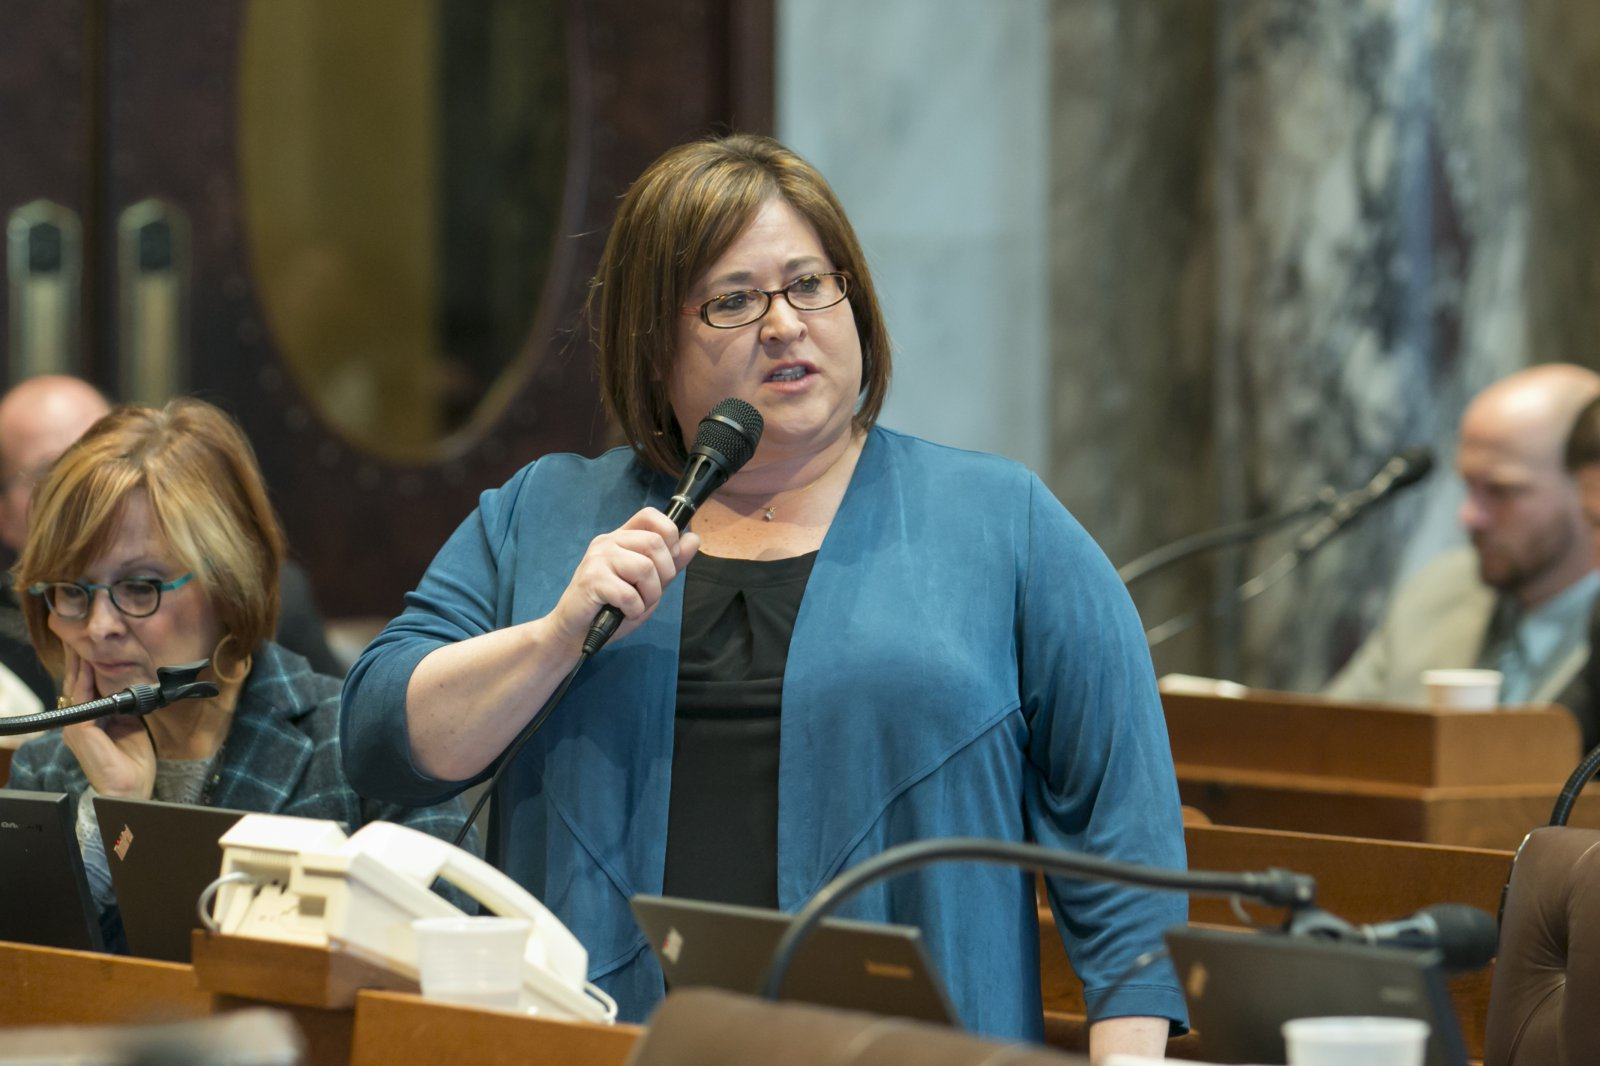 Representative Subeck Testifies on Bill to Limit Shackling of Incarcerated Women during Labor and Childbirth